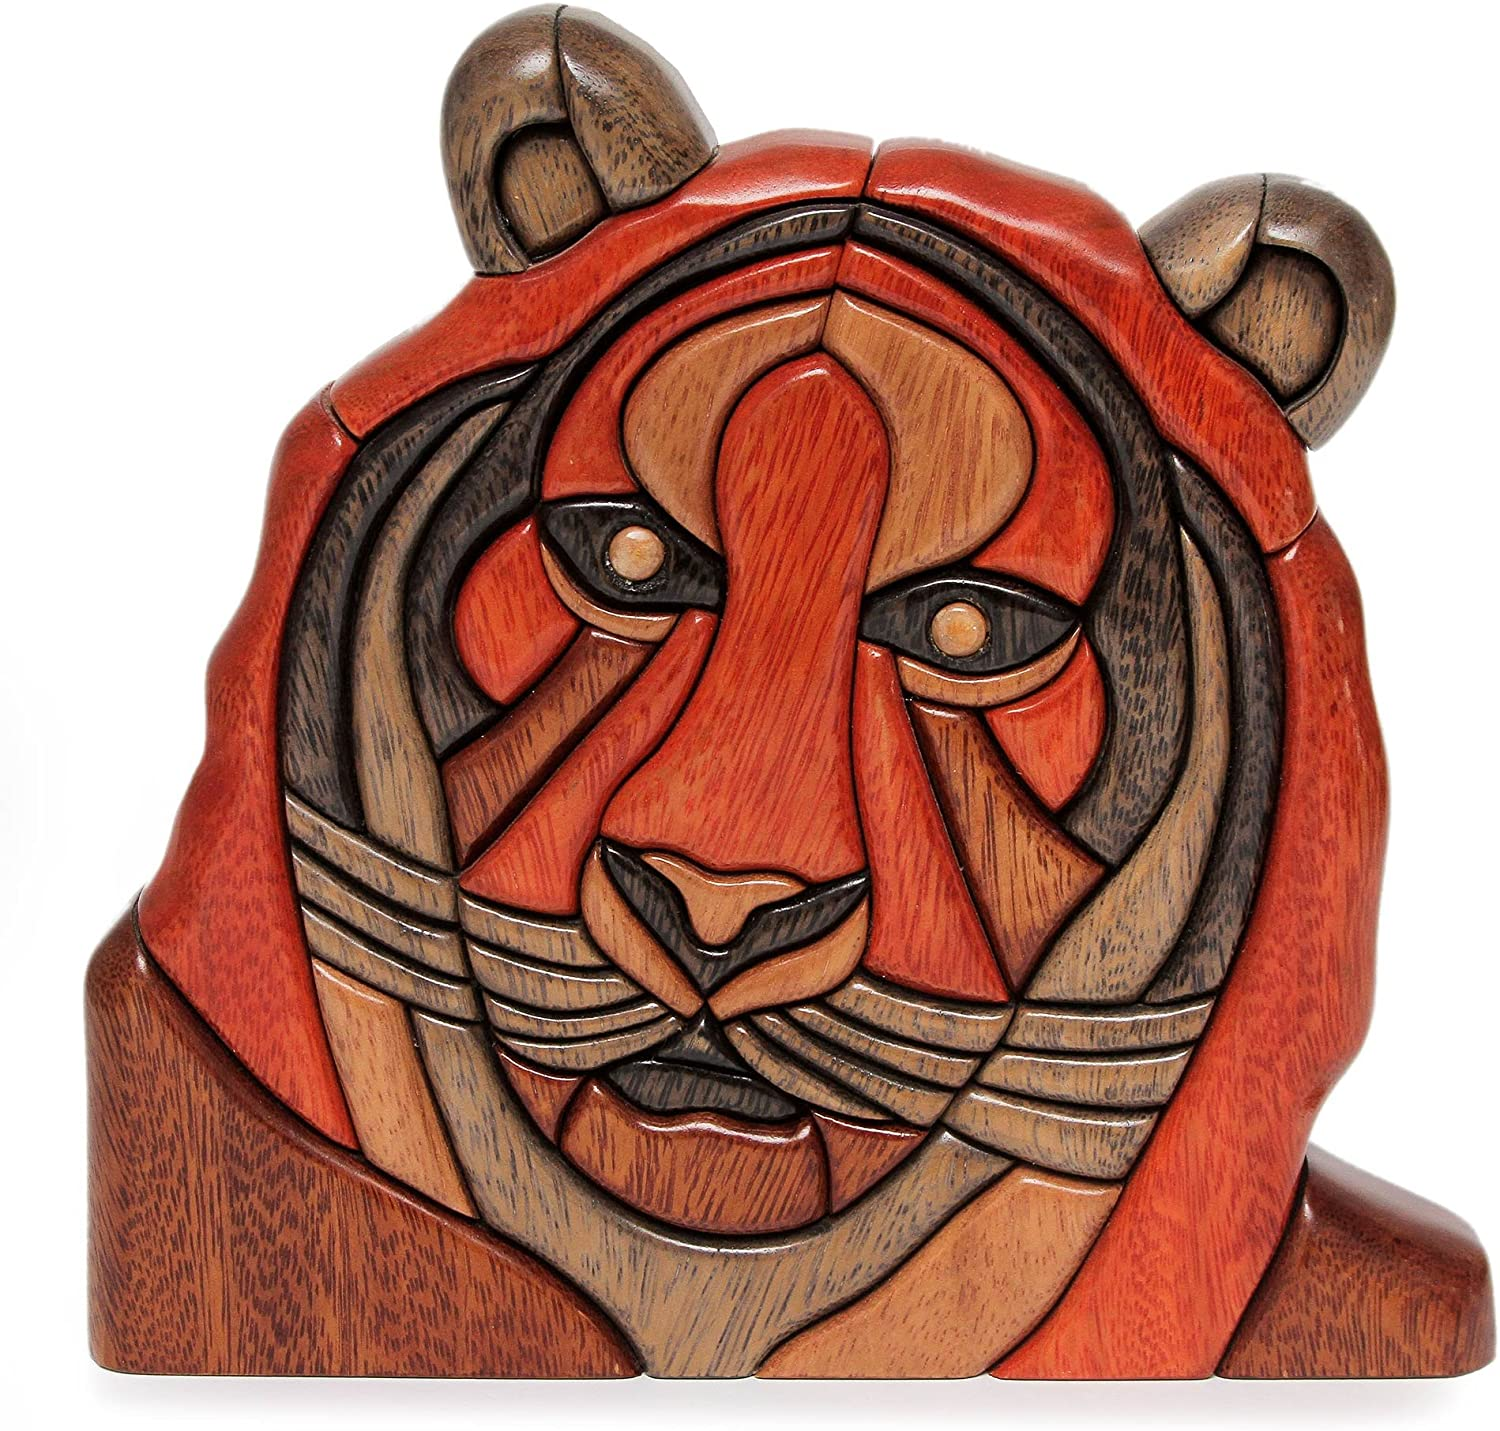 NOVICA Animal Themed Wood Sculpture All items free shipping Luxury goods 9.25